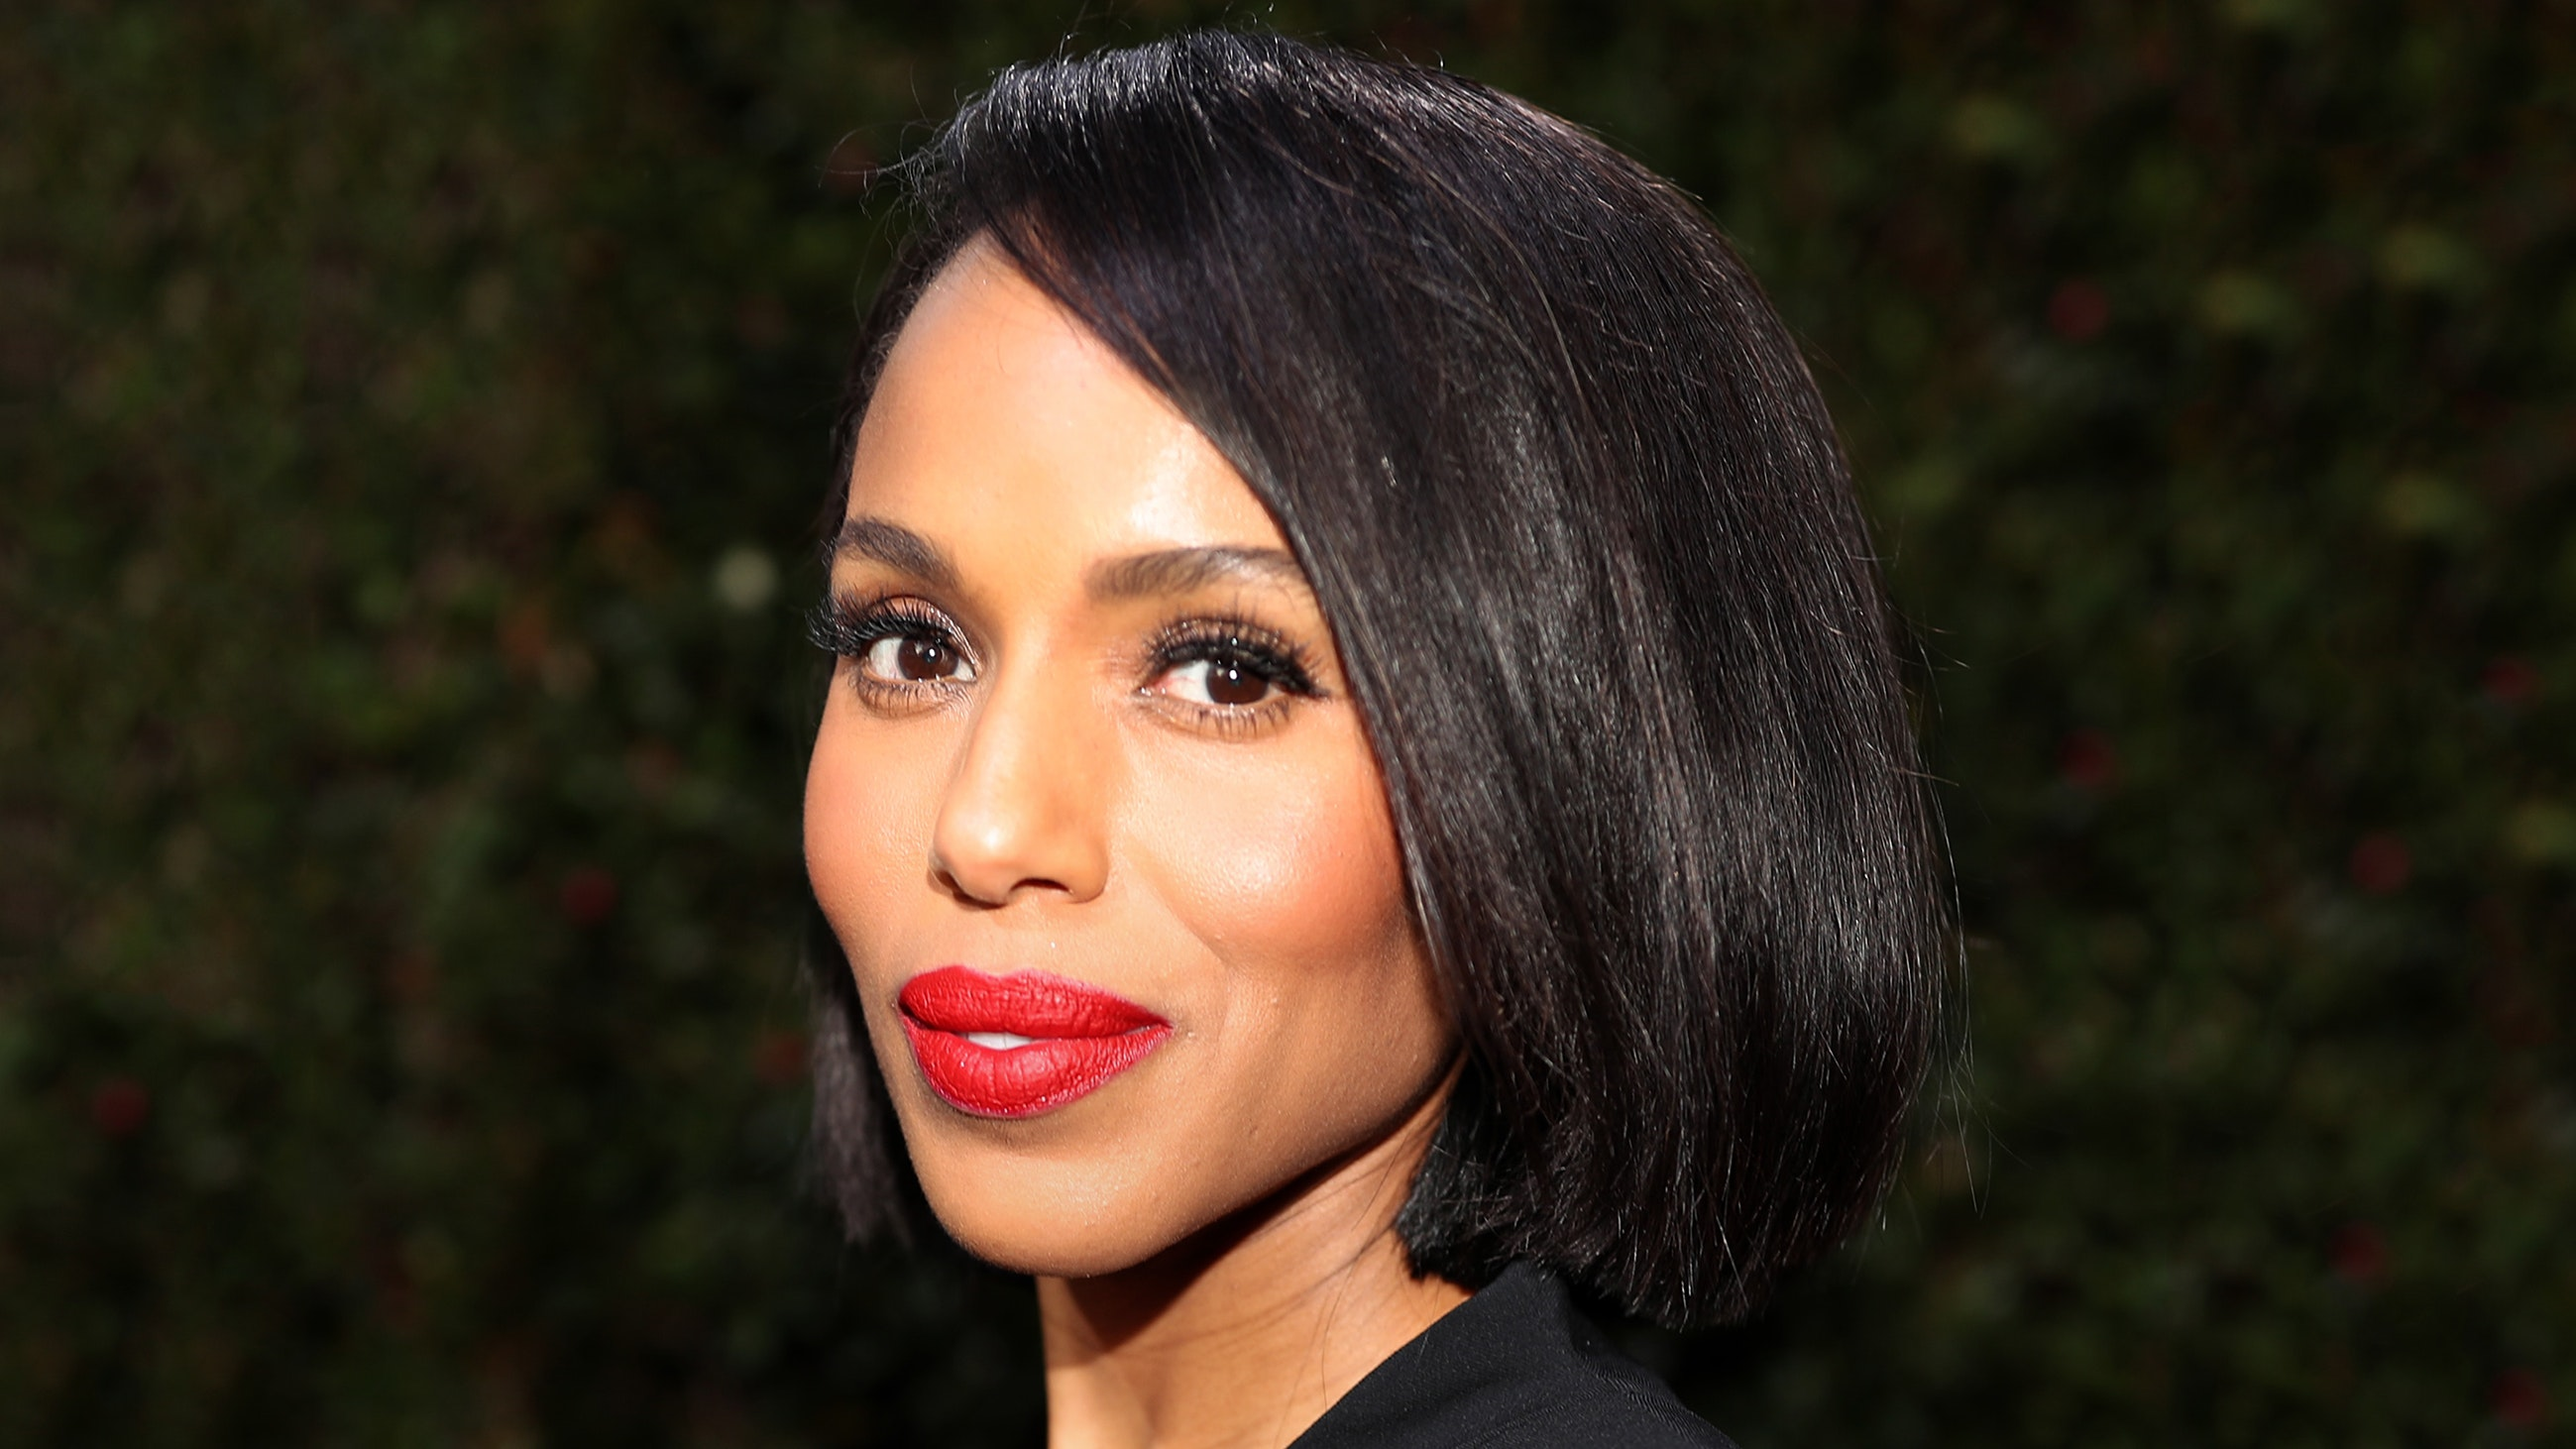 Kerry Washington Golden Globes 2020 hair and makeup